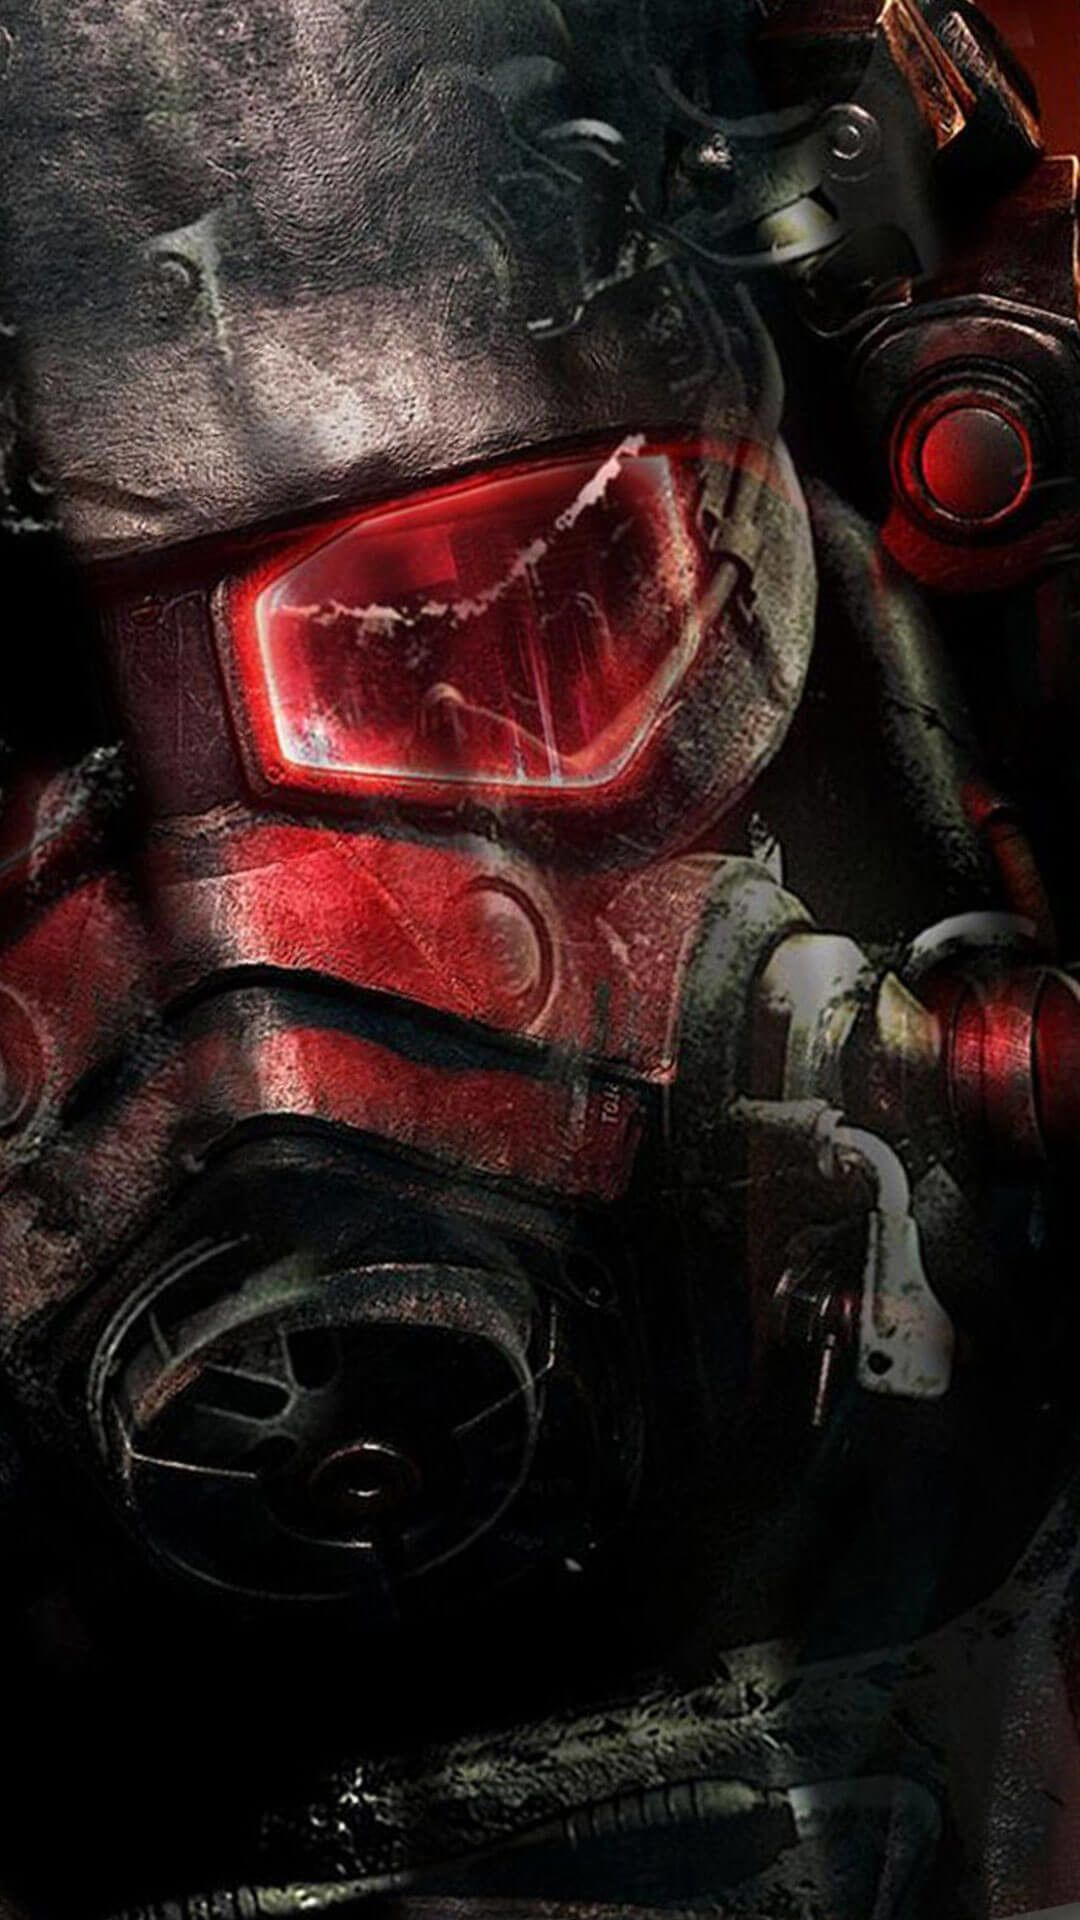 Fallout Background Hupages Download Iphone Wallpapers Fallout Wallpaper Fallout Backgrounds Iphone Wallpaper